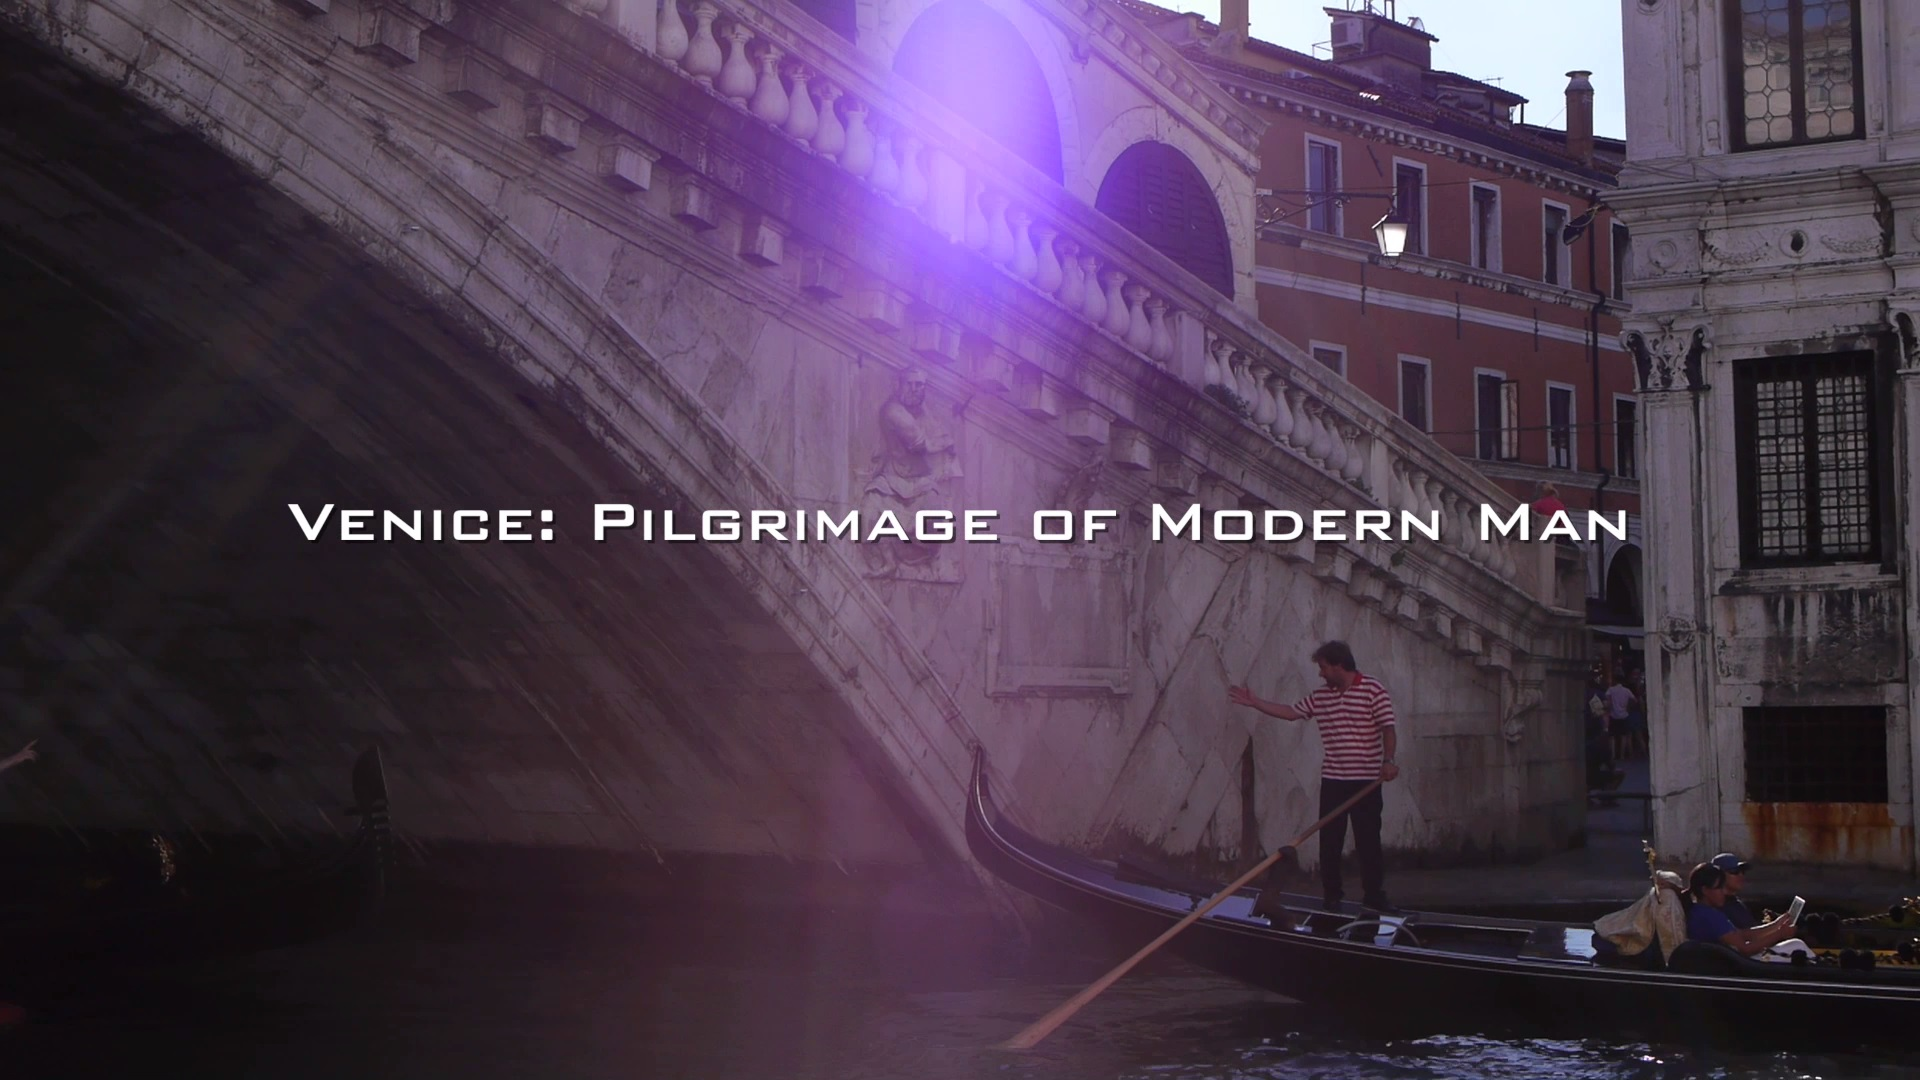 Venice: Pilgrimage of Modern Man